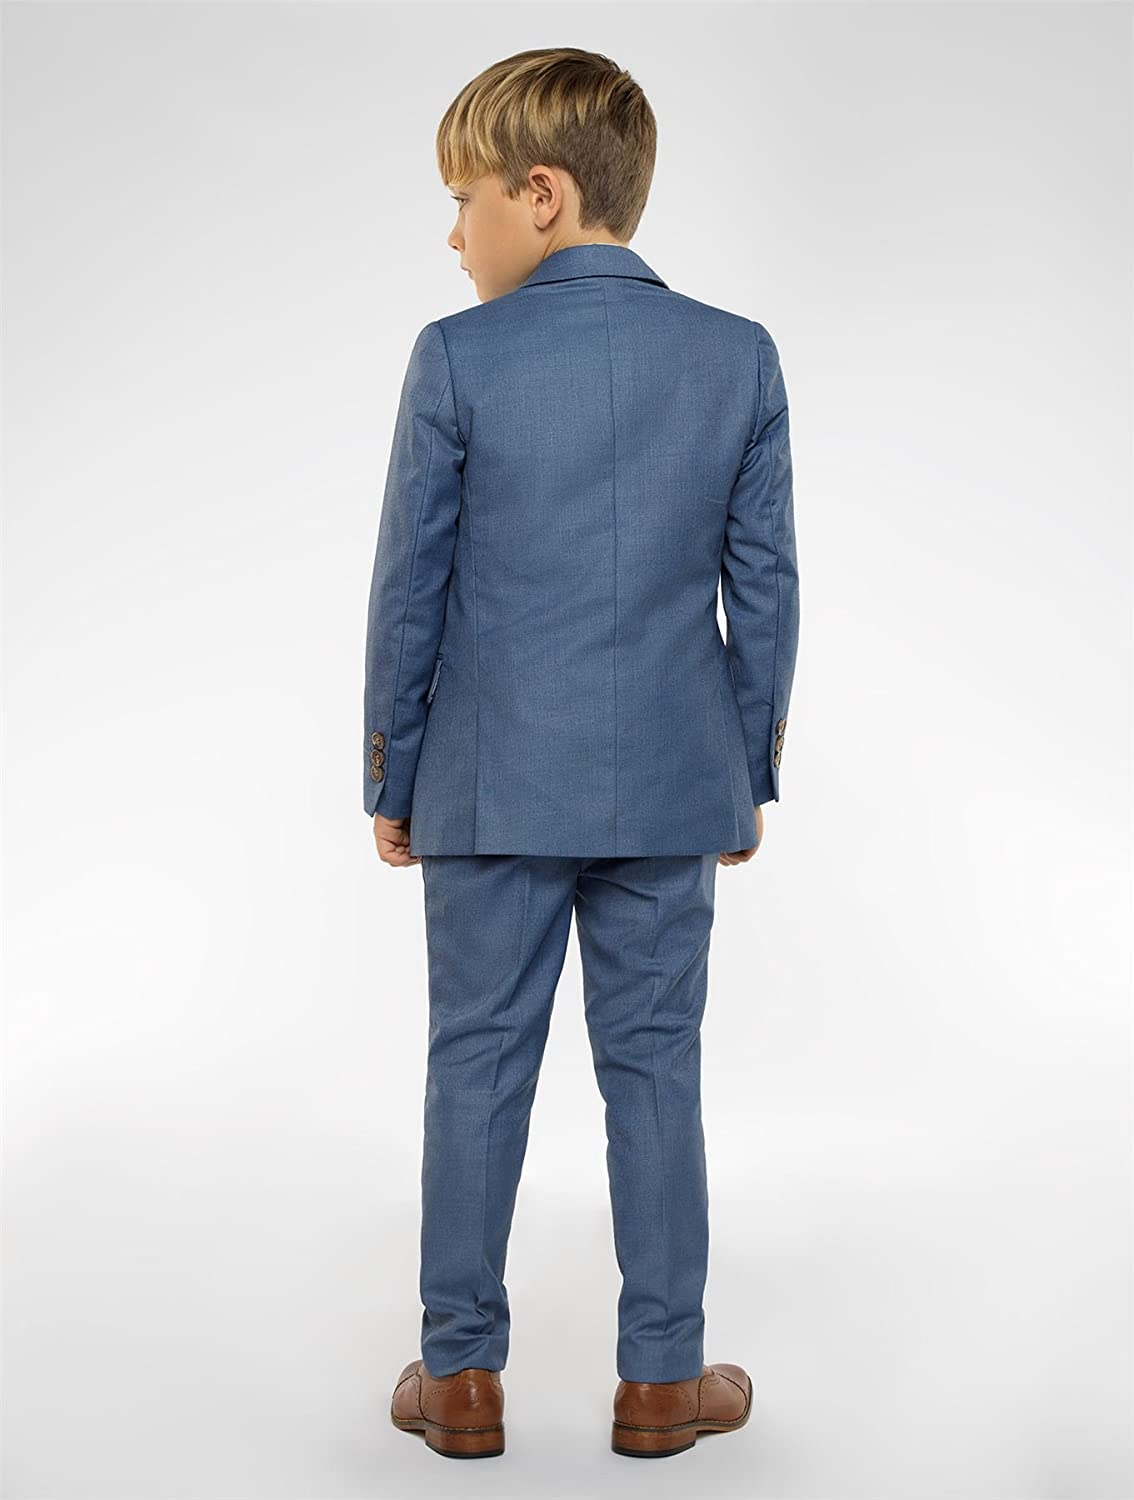 Paisley of London Boys Chambrey Suit, Boys Wedding Suits, Page boy ...